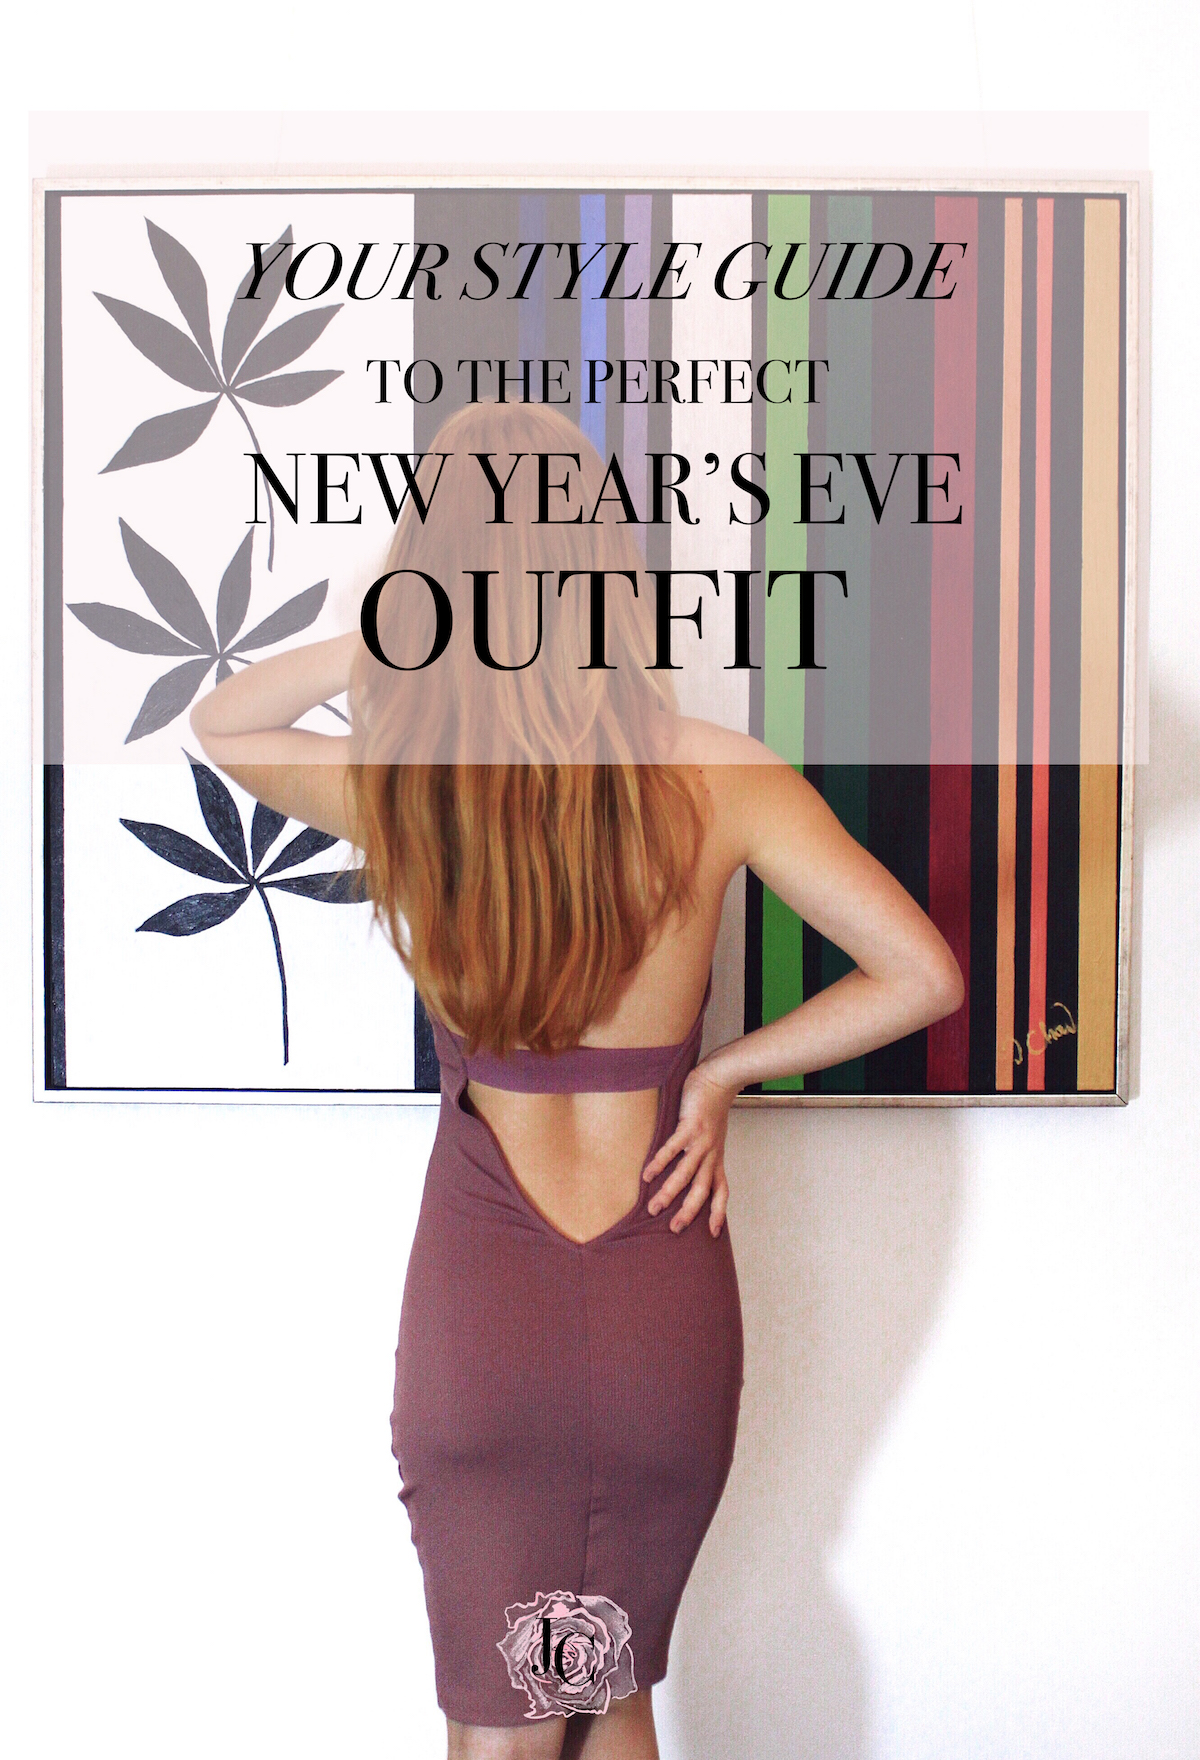 This style guide is specially designed for whatever occasion you are set on for New Year's Eve. So whether you are going all out for a clubbing outfit, or you are spending the night in with your guy, I got your covered, from glittery gowns to comfy PJ's. Click to read more!